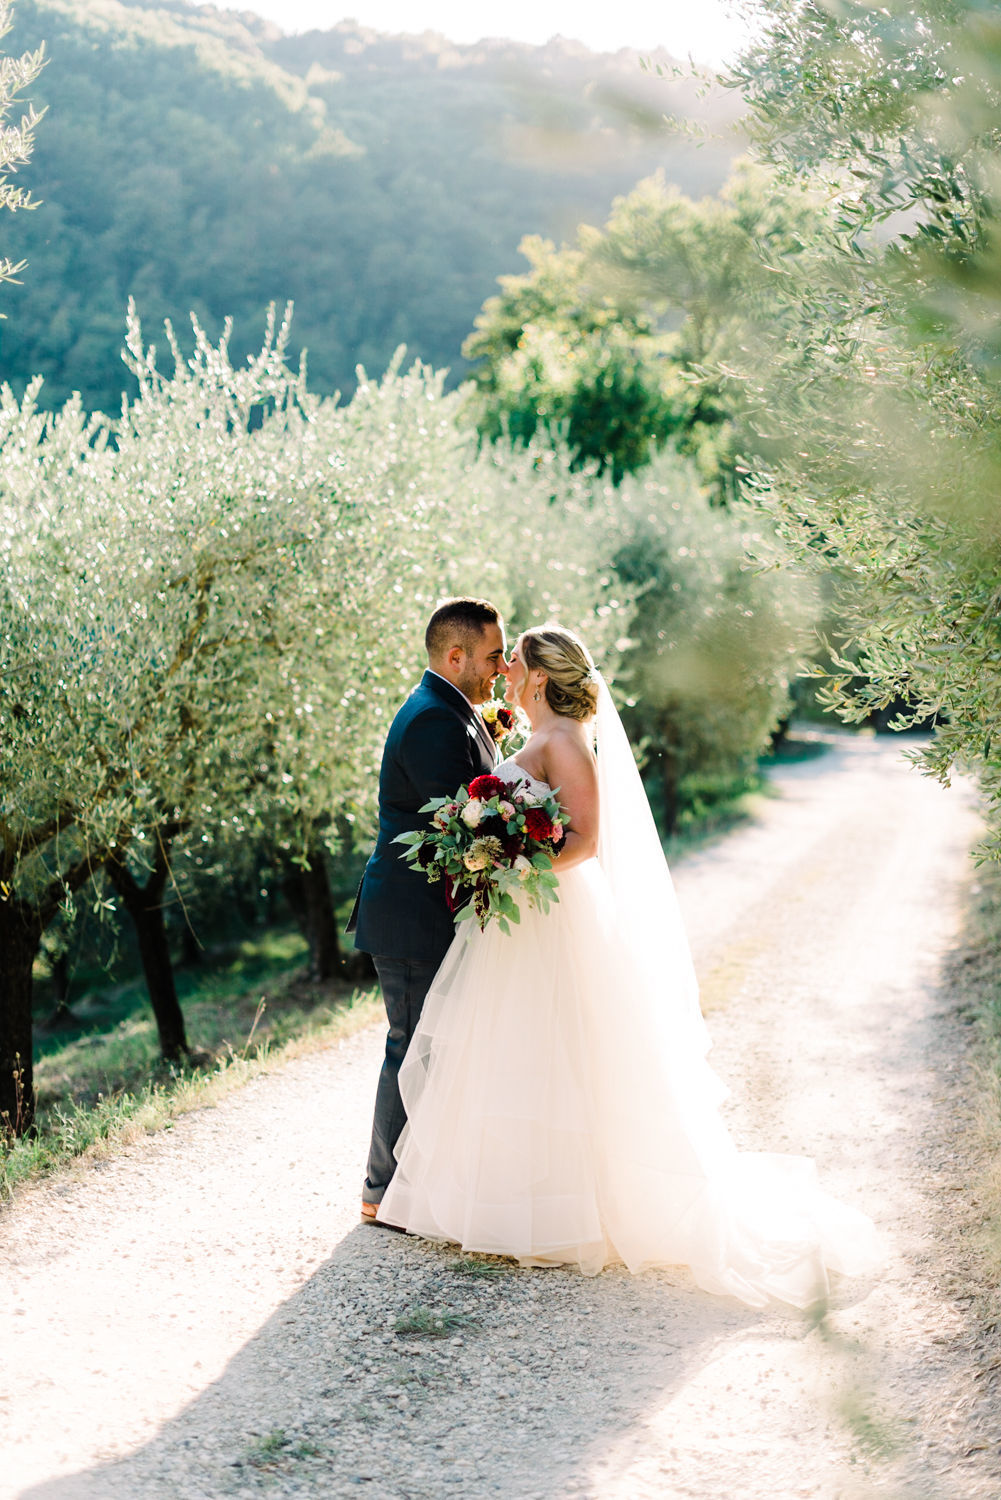 Tuscan countryside wedding with bride and groom portraits in olive tree grove